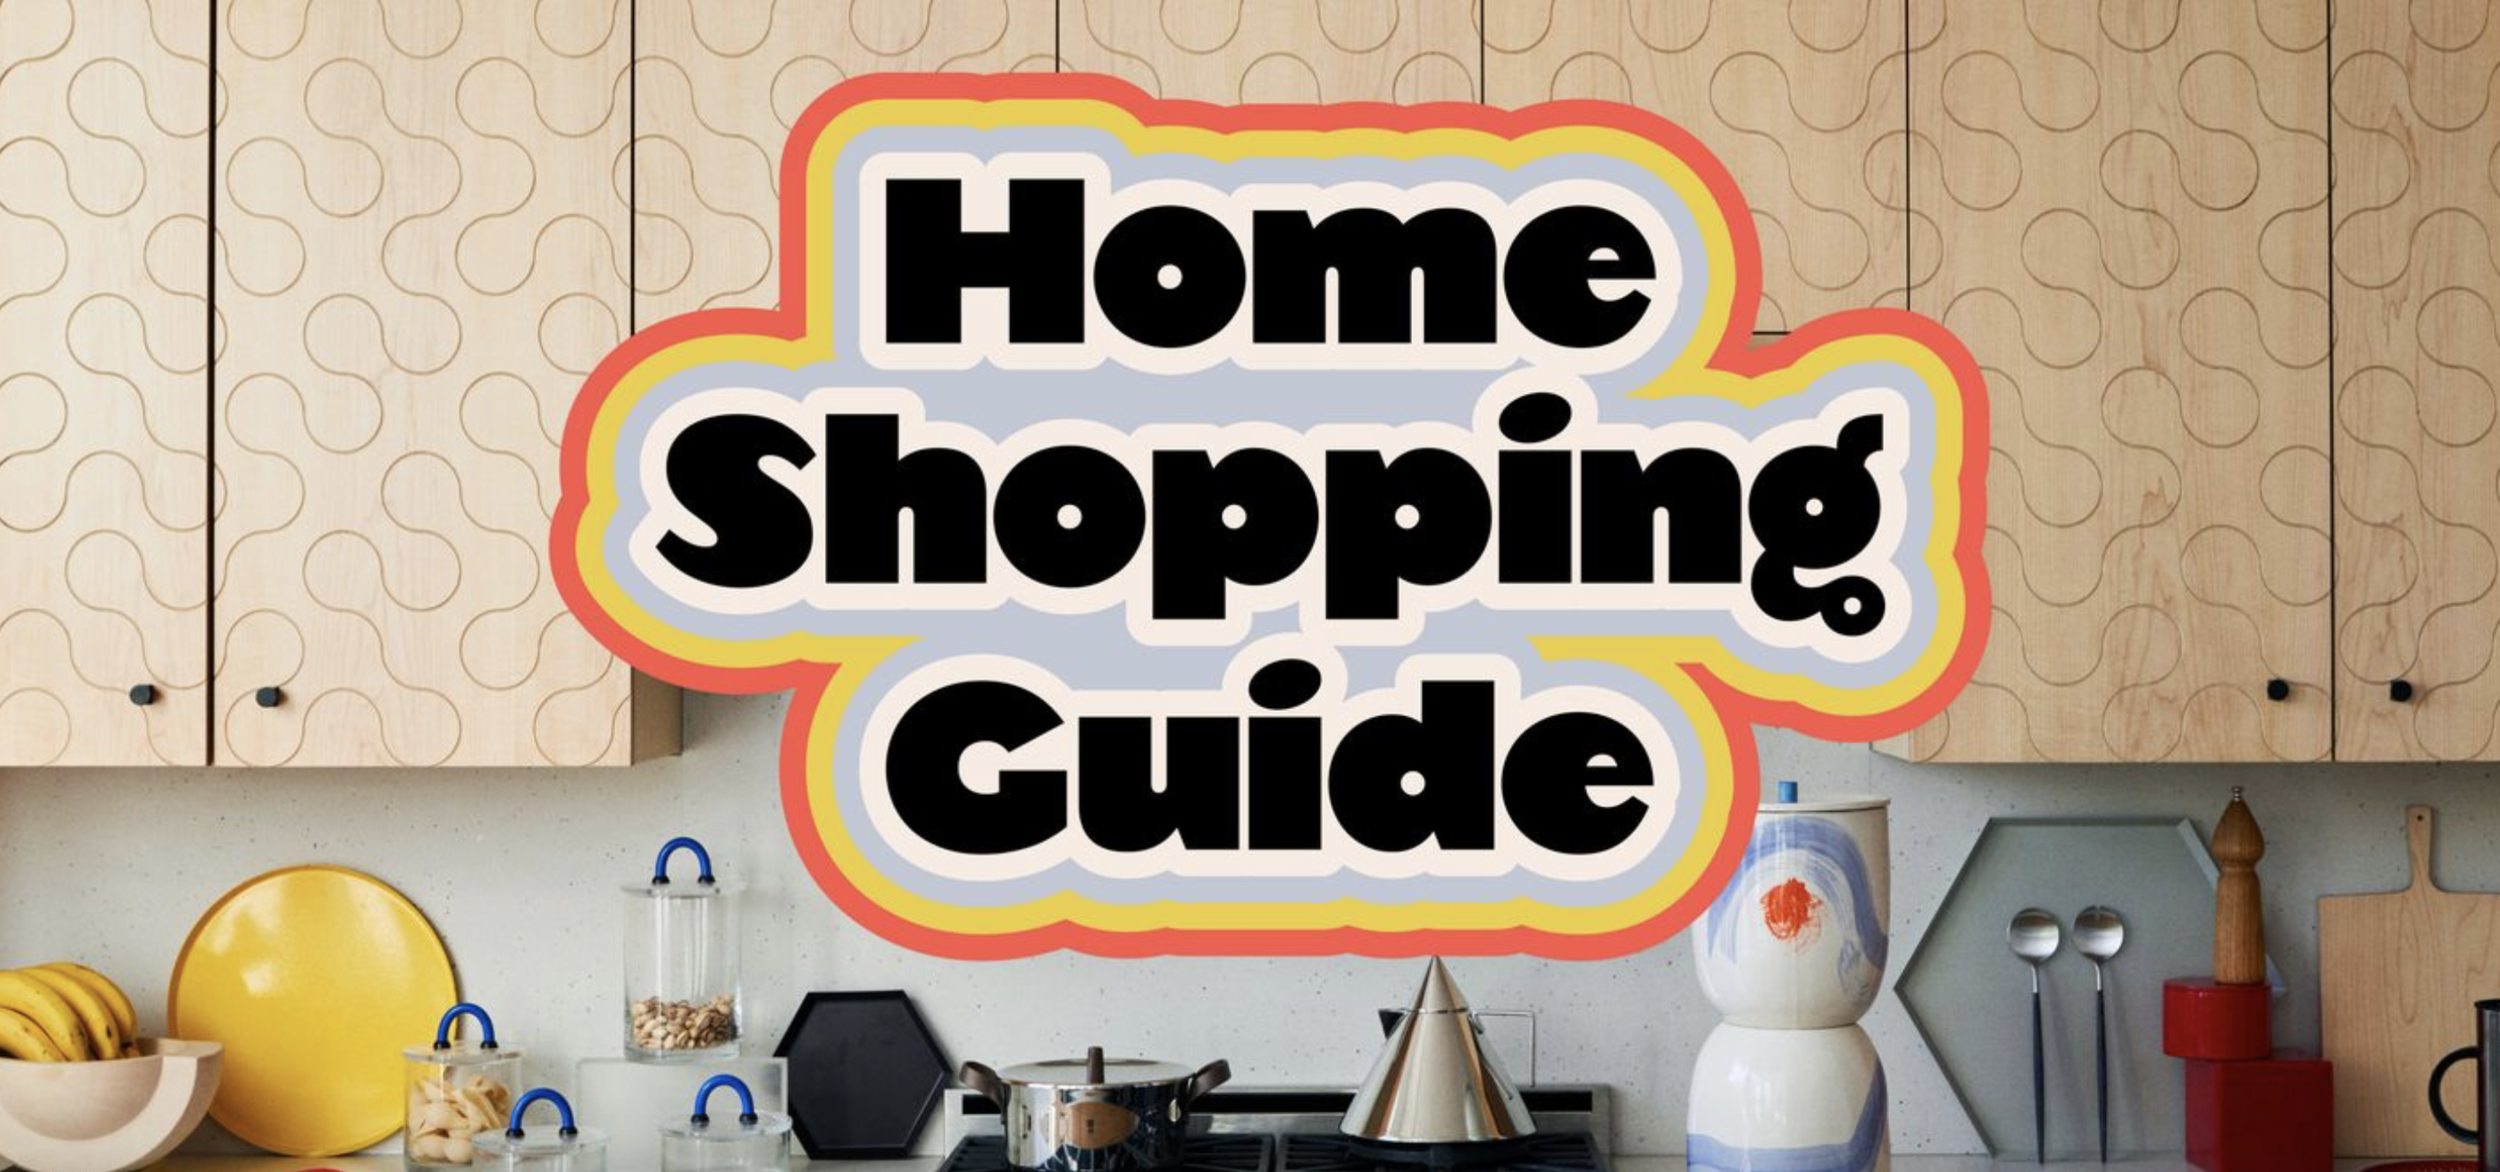 CURBED - Best home goods and furniture stores in NYCGive your apartment a small refresh or a total makeover at these shops specializing in furniture and home decor